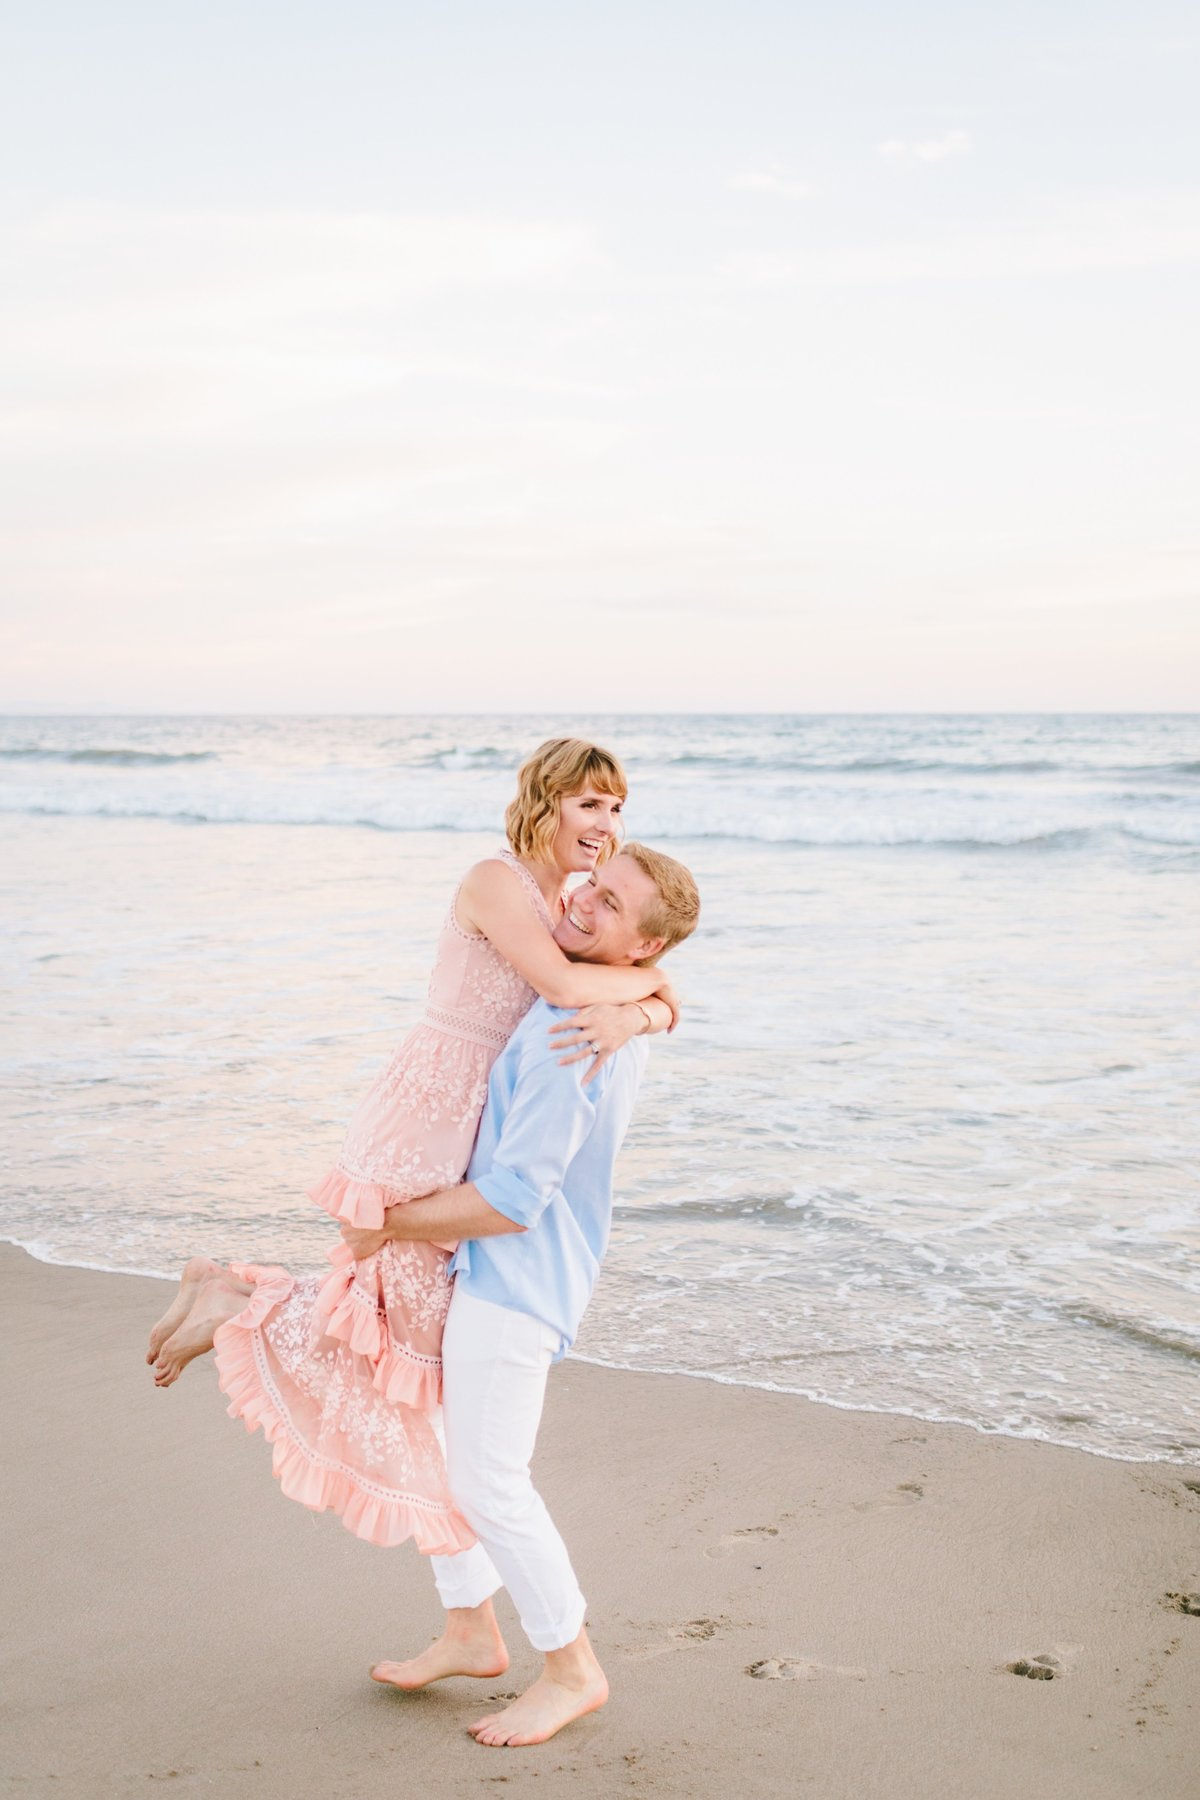 Best California Engagement Photographer-Jodee Debes Photography-83